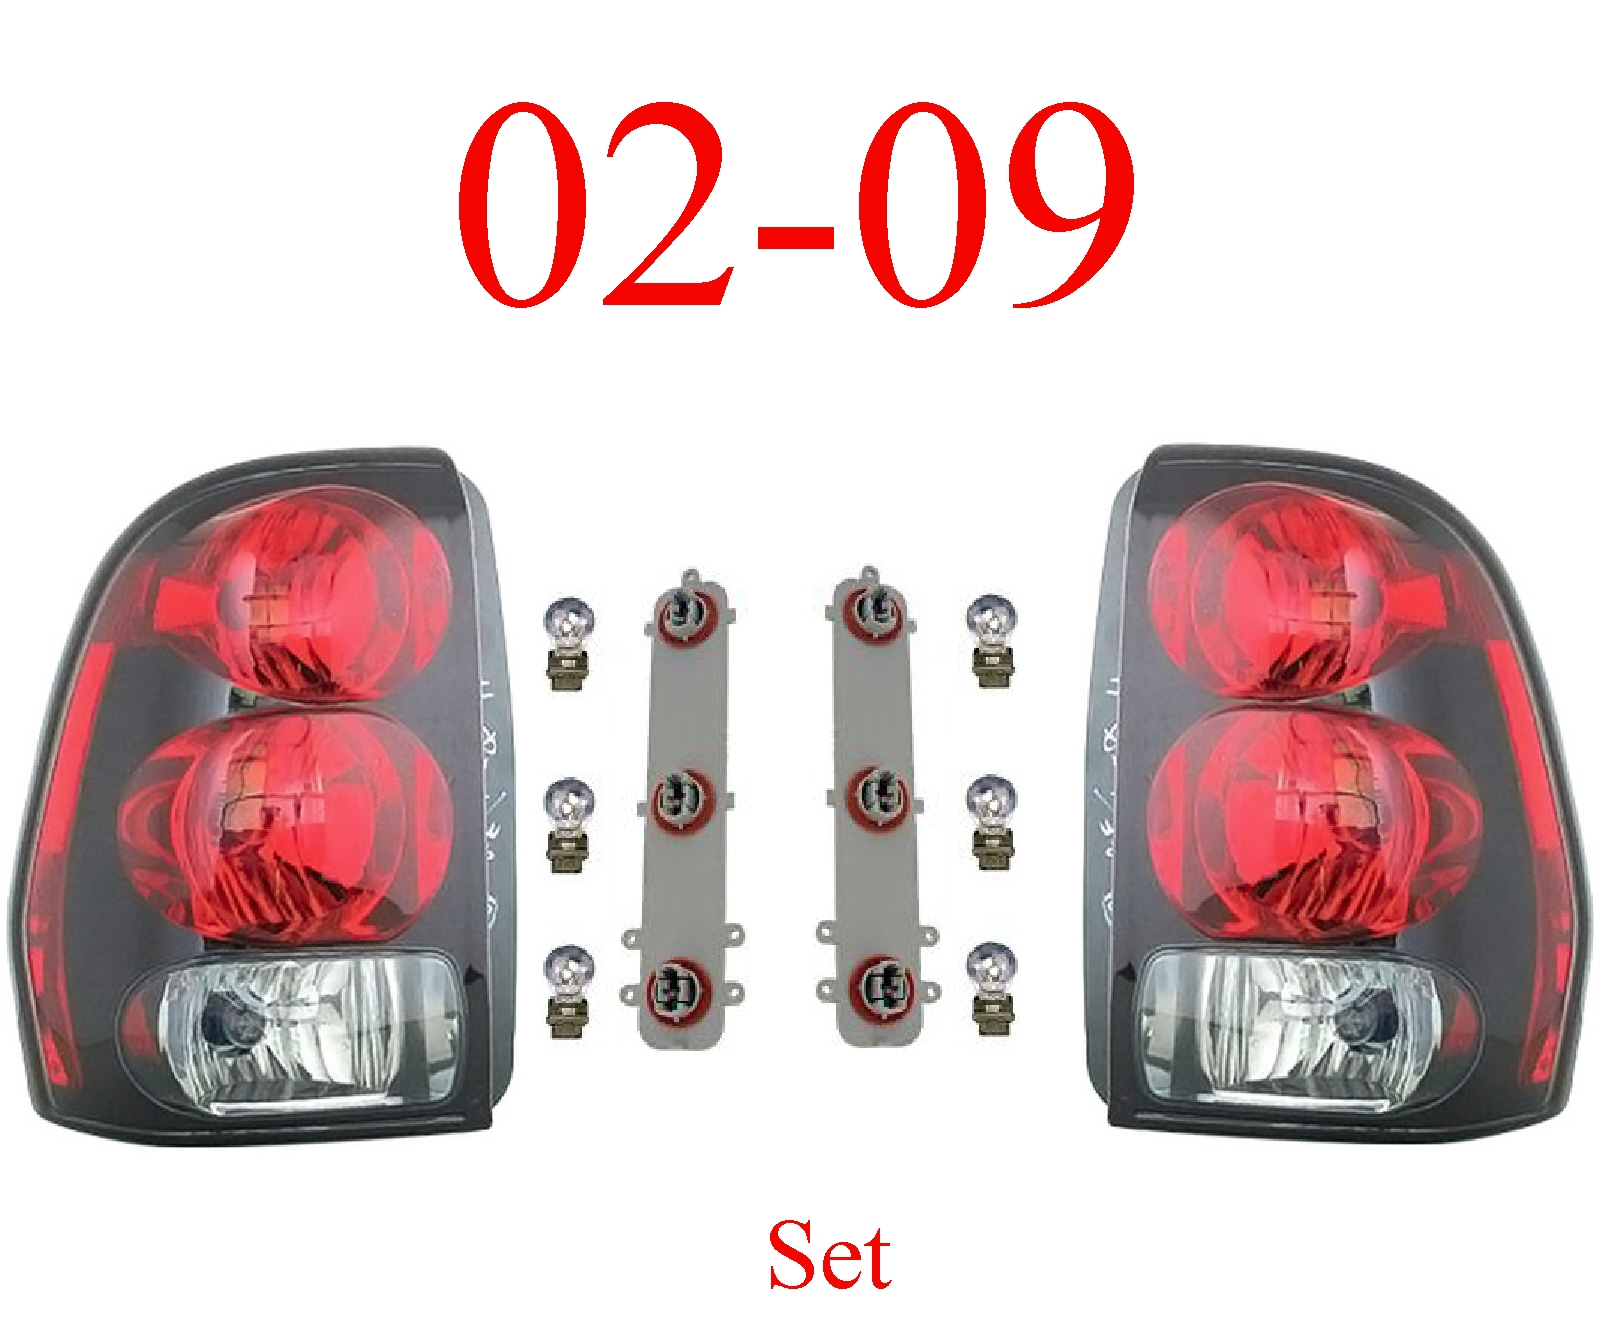 02-09 Trailblazer Tail Light Set, Assembly